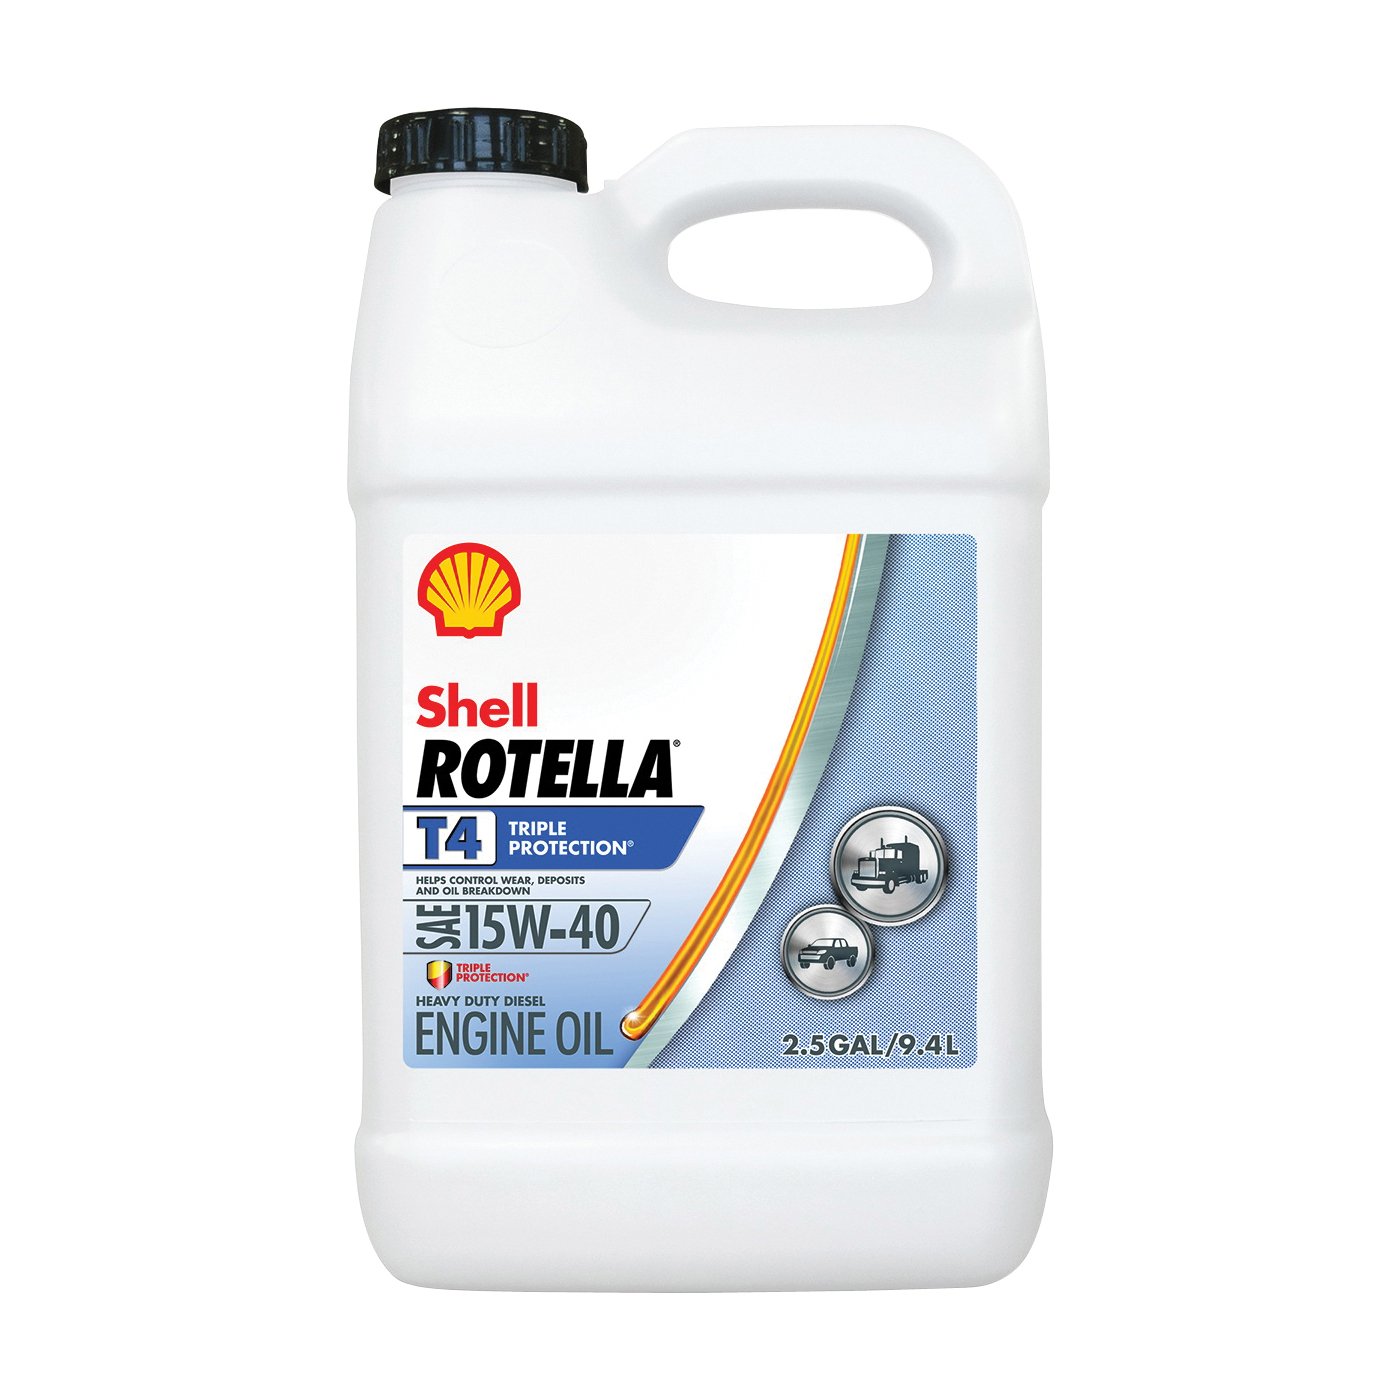 Picture of Shell Rotella T4 Series 550045127 Engine Oil, 15W-40, 2.5 gal Package, Jug